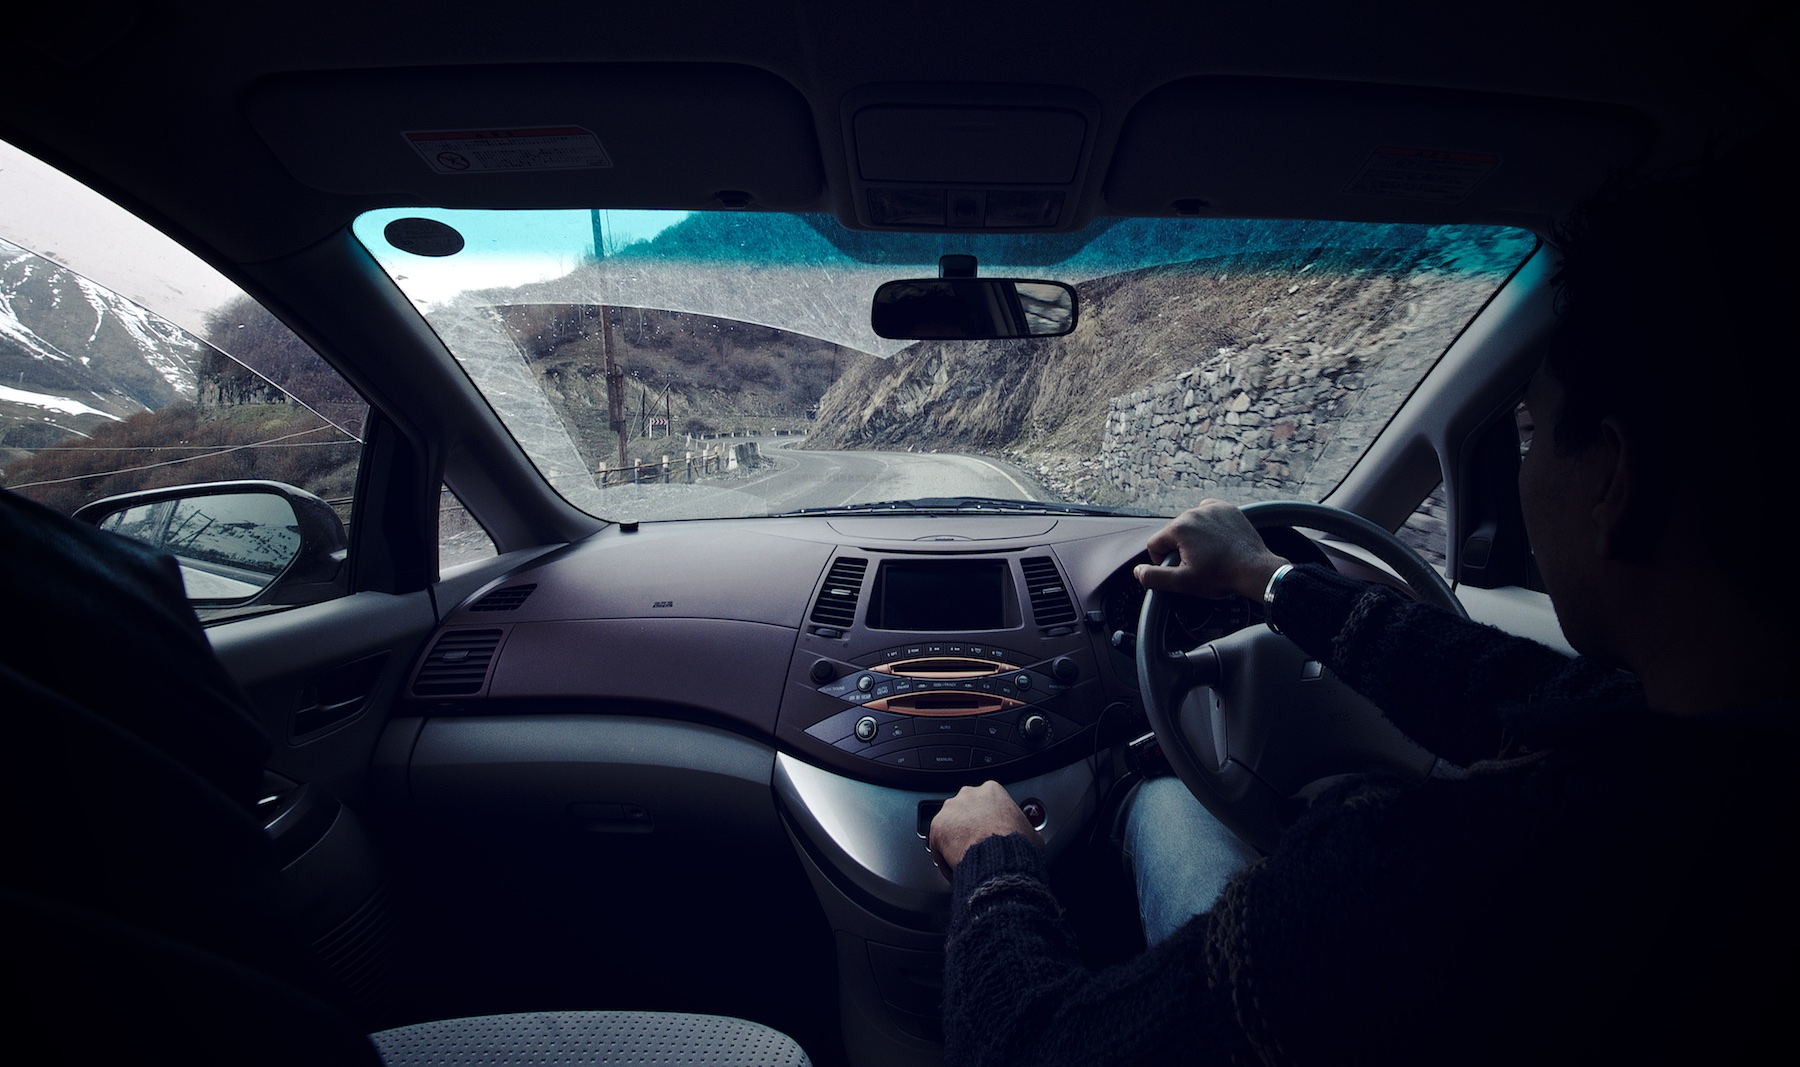 Driving Up the Mountains